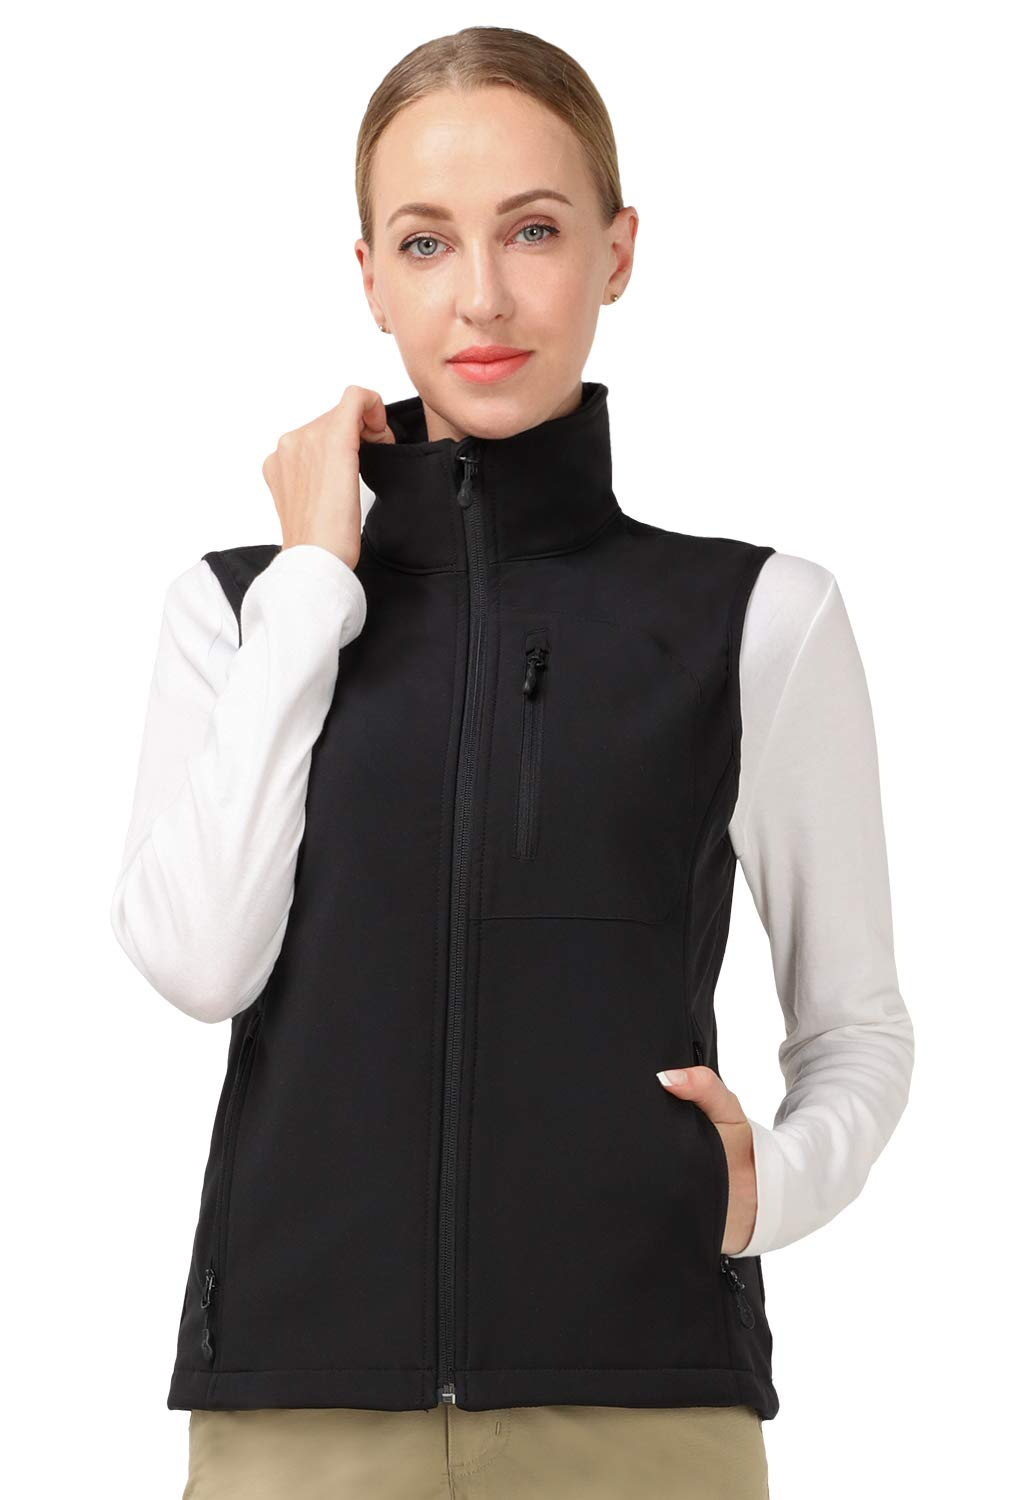 Water Resistant and Zip Front MIER Womens Windproof Softshell Jacket with Hood Fleece Lined Warm Up Jacket